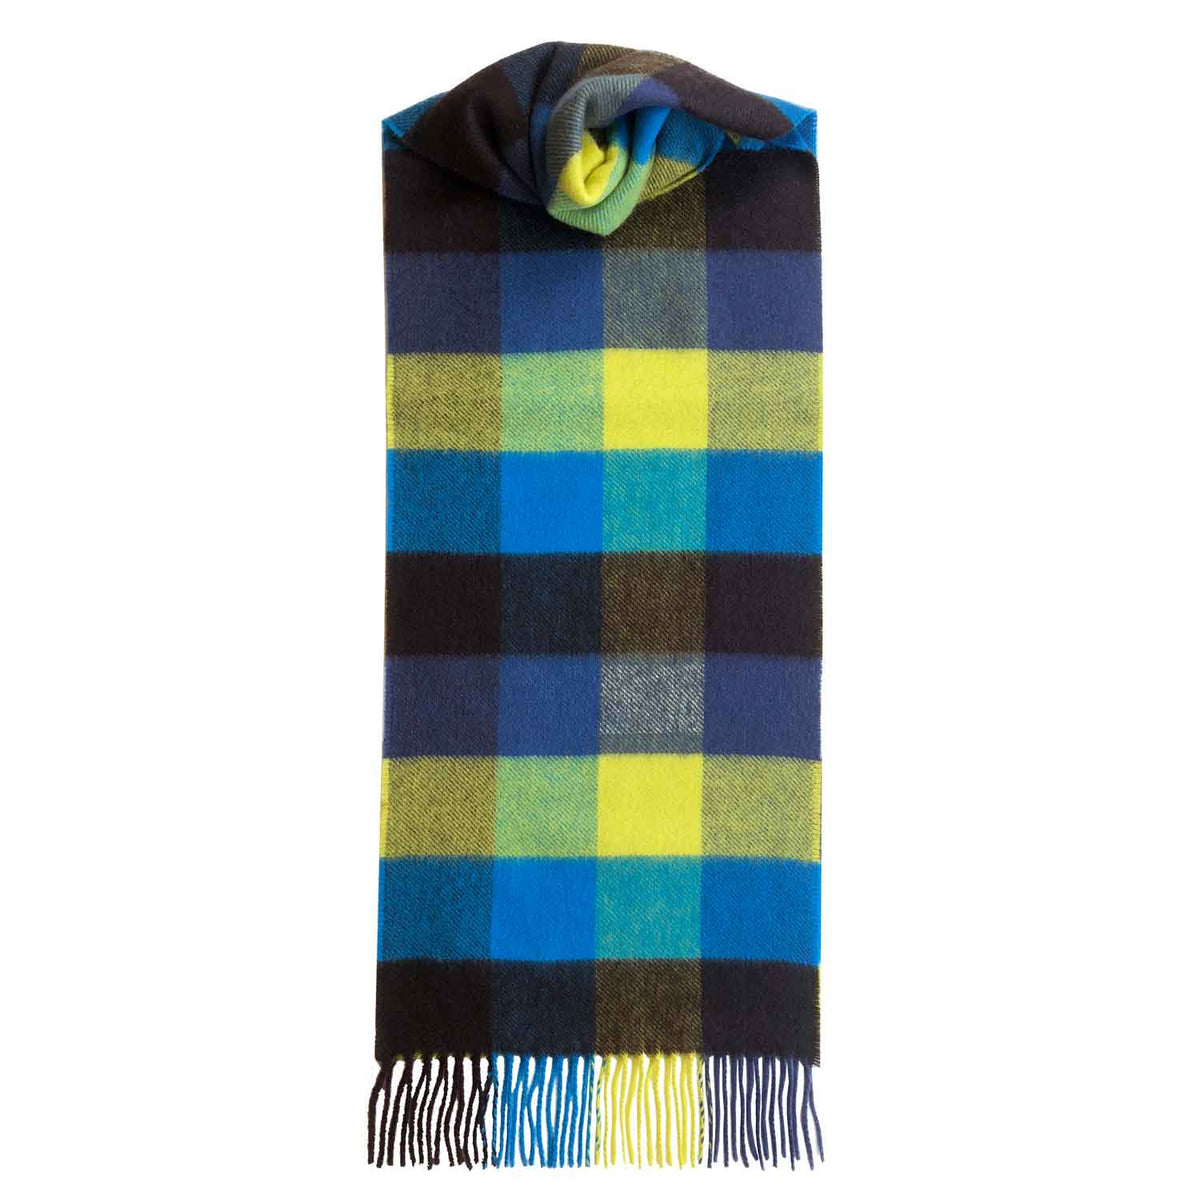 Lomond Cashmere | Bright Blue Yellow | Check Cashmere Scarf With Fringes | Made in Scotland | Shop at The Cashmere Choice | London